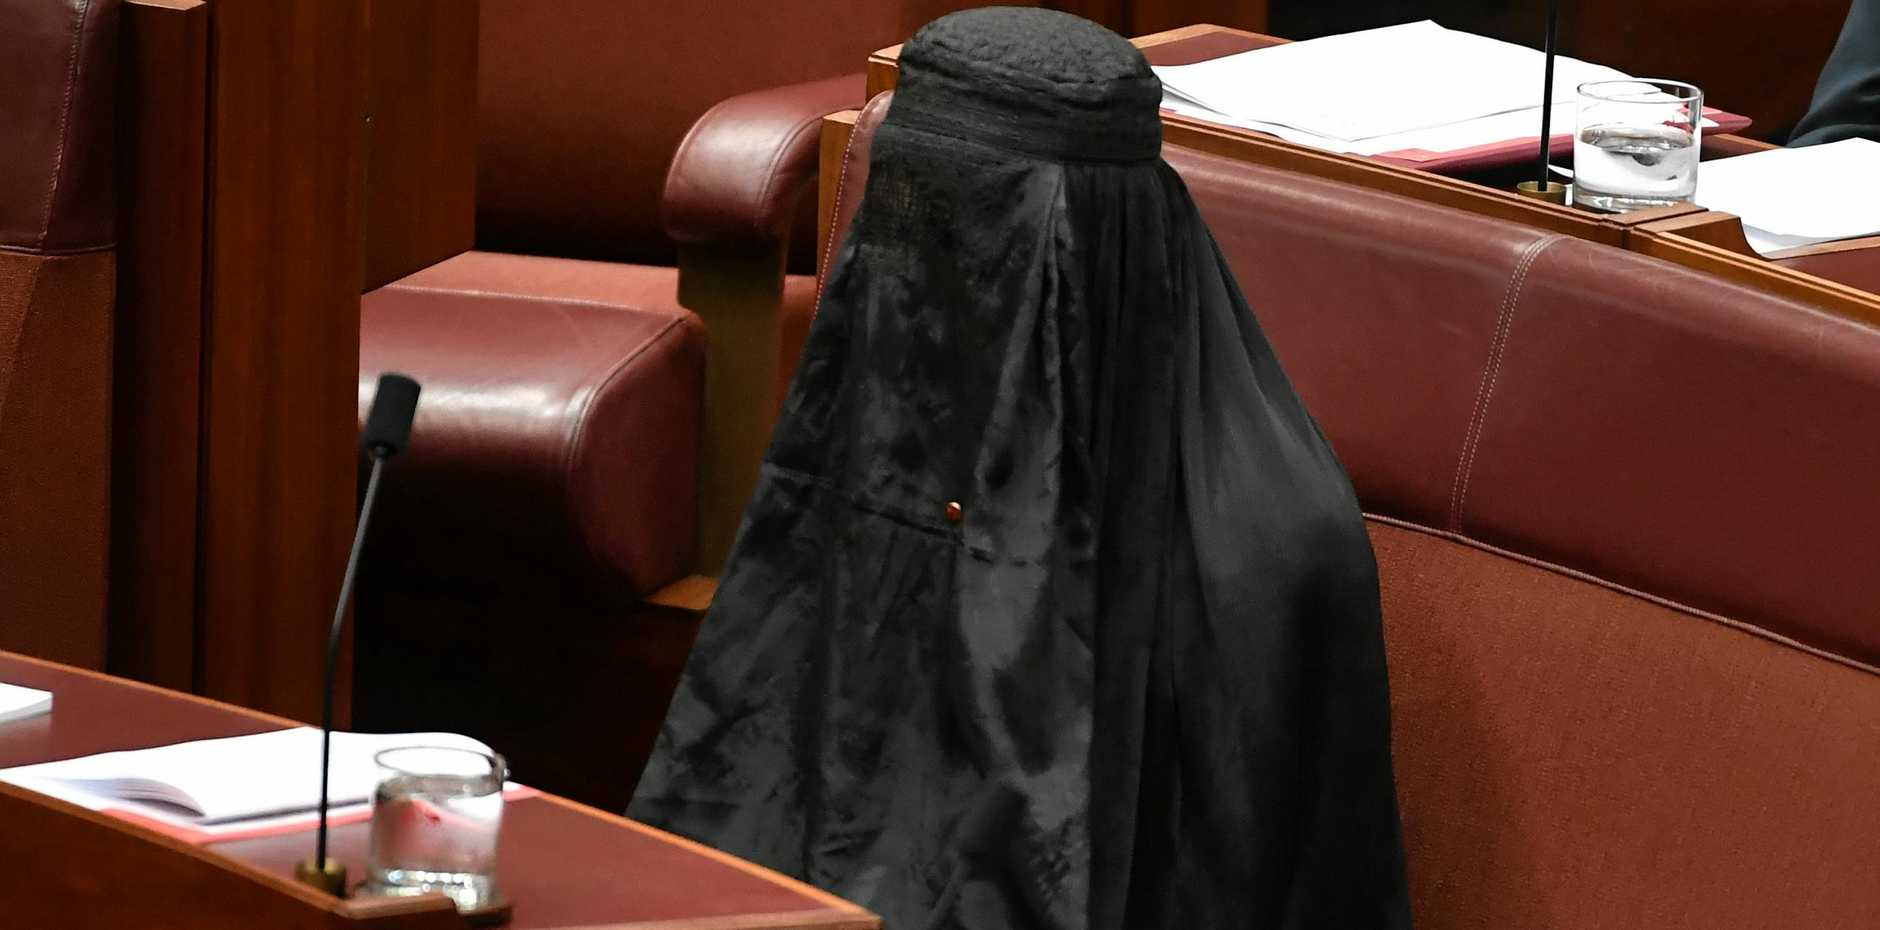 One Nation Leader Senator Pauline Hanson wears an Islamic veil in the Senate chamber at Parliament House in Canberra, Thursday, August 17, 2017. (AAP Image/Mick Tsikas) NO ARCHIVING